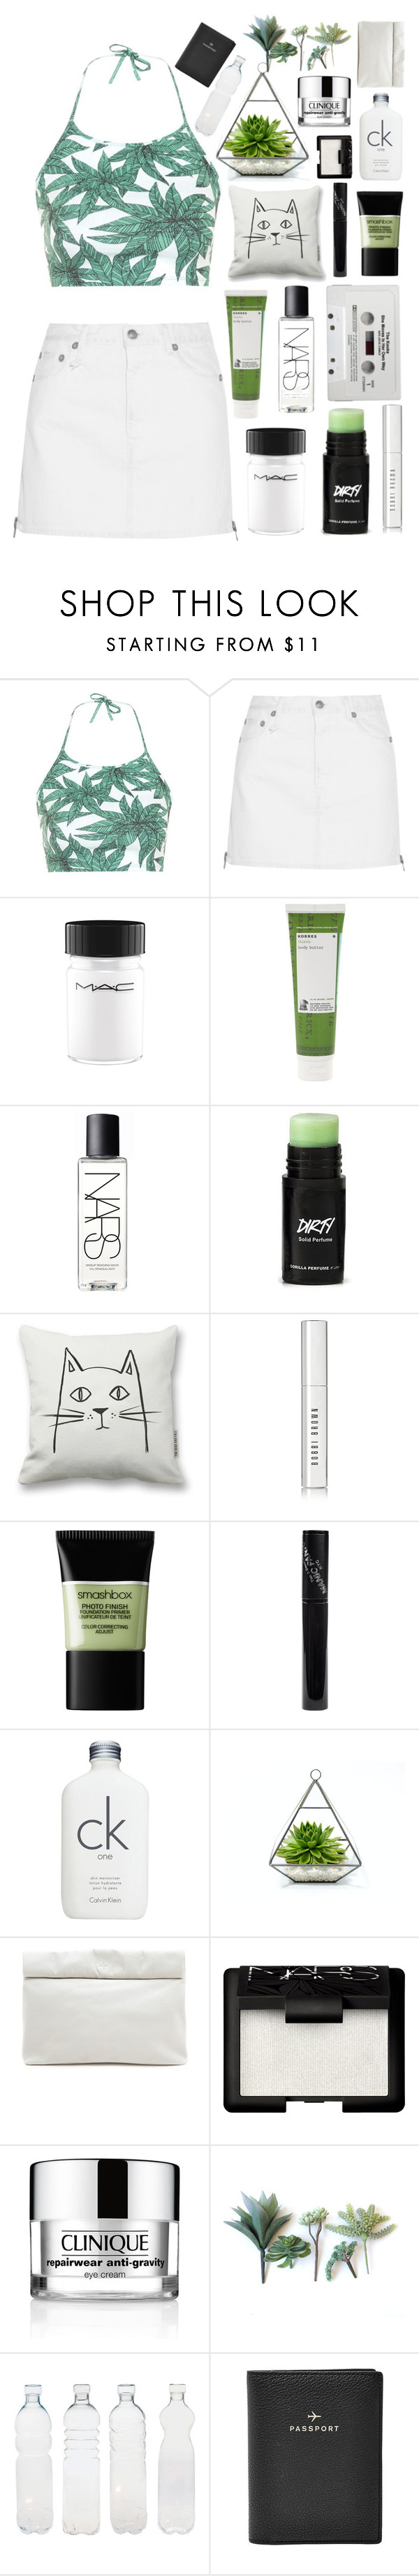 """""""Untitled #85"""" by bbernie ❤ liked on Polyvore featuring Motel, R13, MAC Cosmetics, Korres, NARS Cosmetics, CASSETTE, Bobbi Brown Cosmetics, Smashbox, Manic Panic NYC and Calvin Klein"""